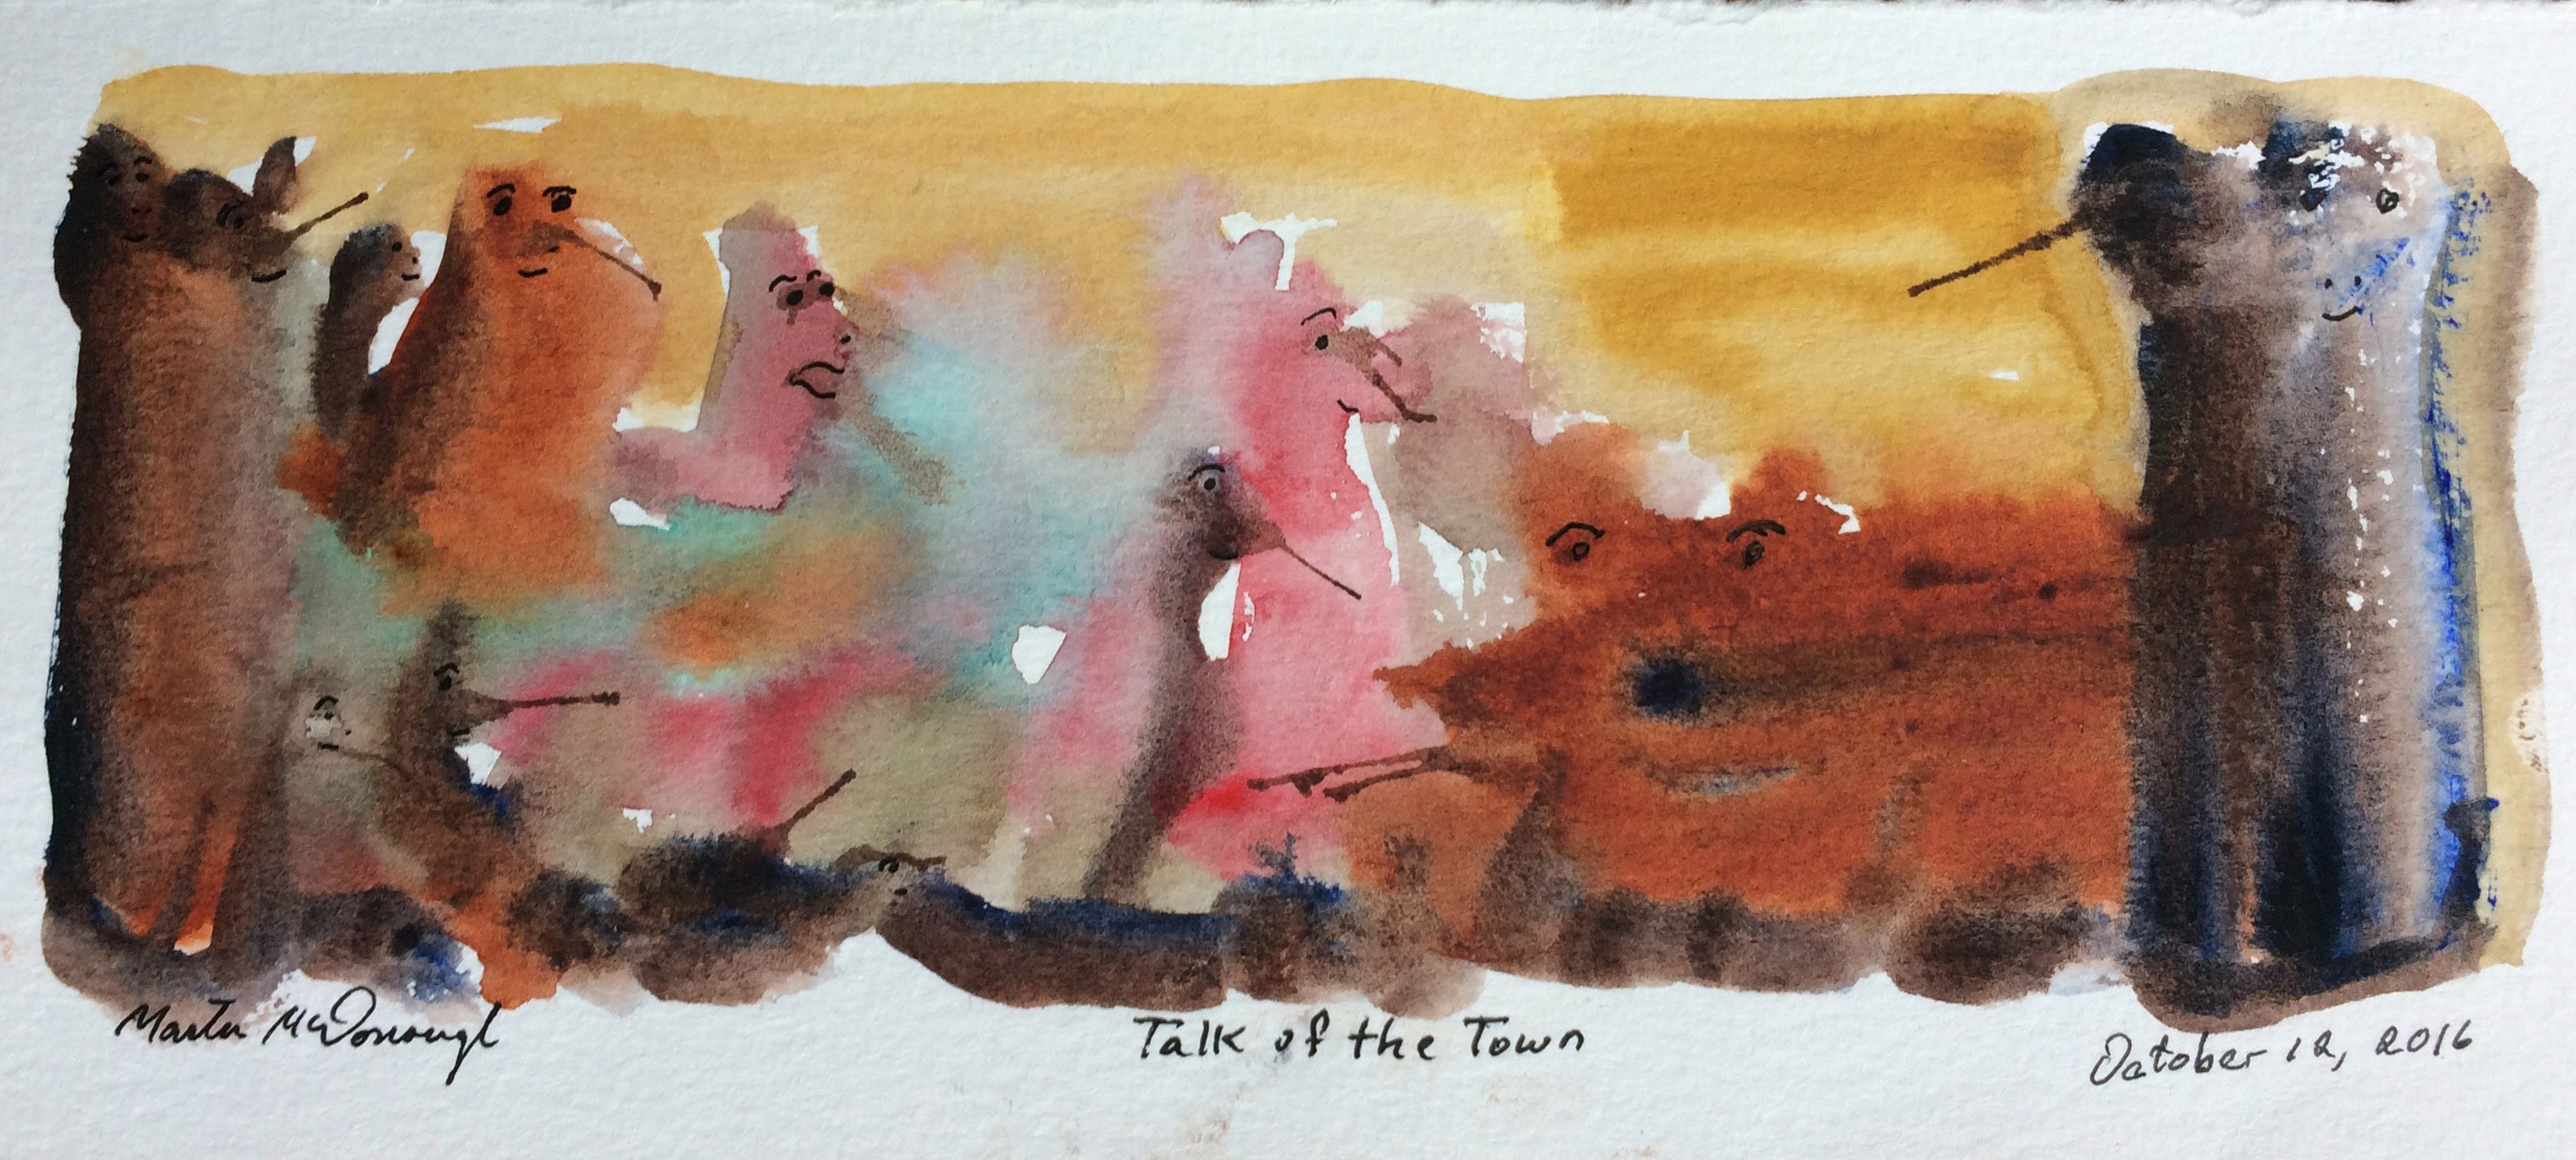 talk_of_the_town_web